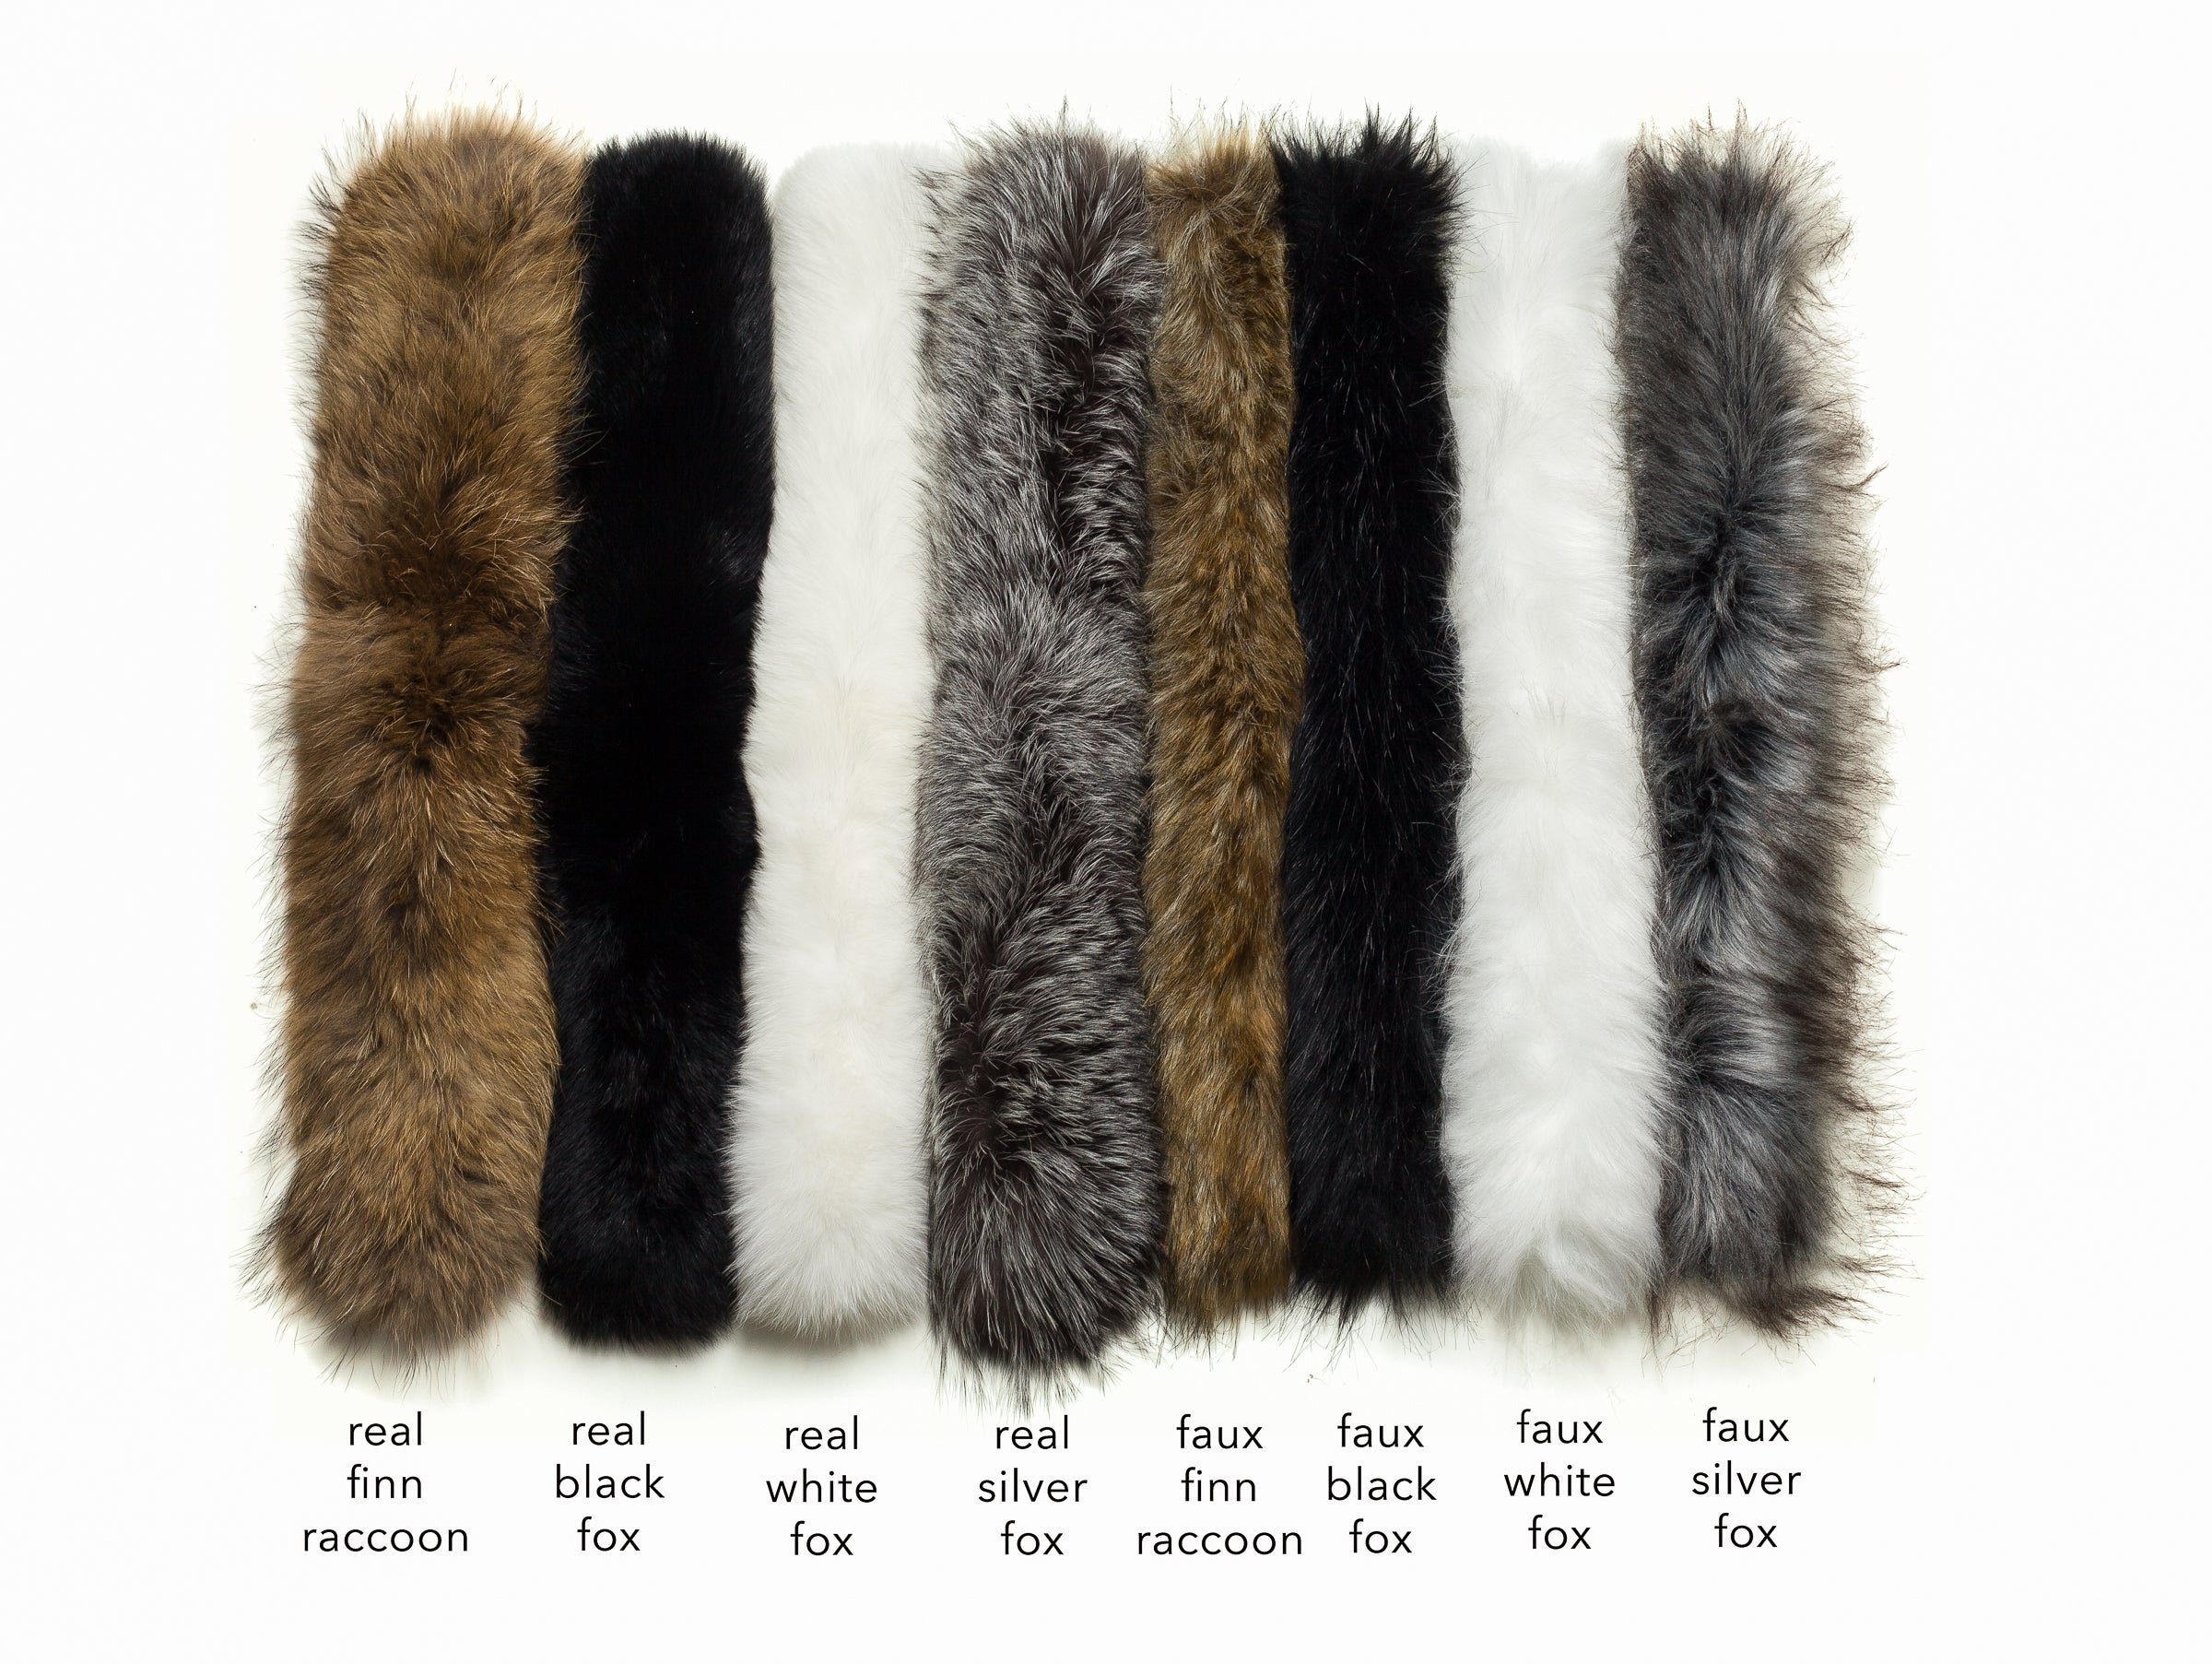 ski jackets, ski pants, luxury skiwear, ski apparel, ski fashion, fur ski apparel, fur trim, Real Finn Raccoon Fur Border, Skea Limited, Skea Limited - Skea Limited